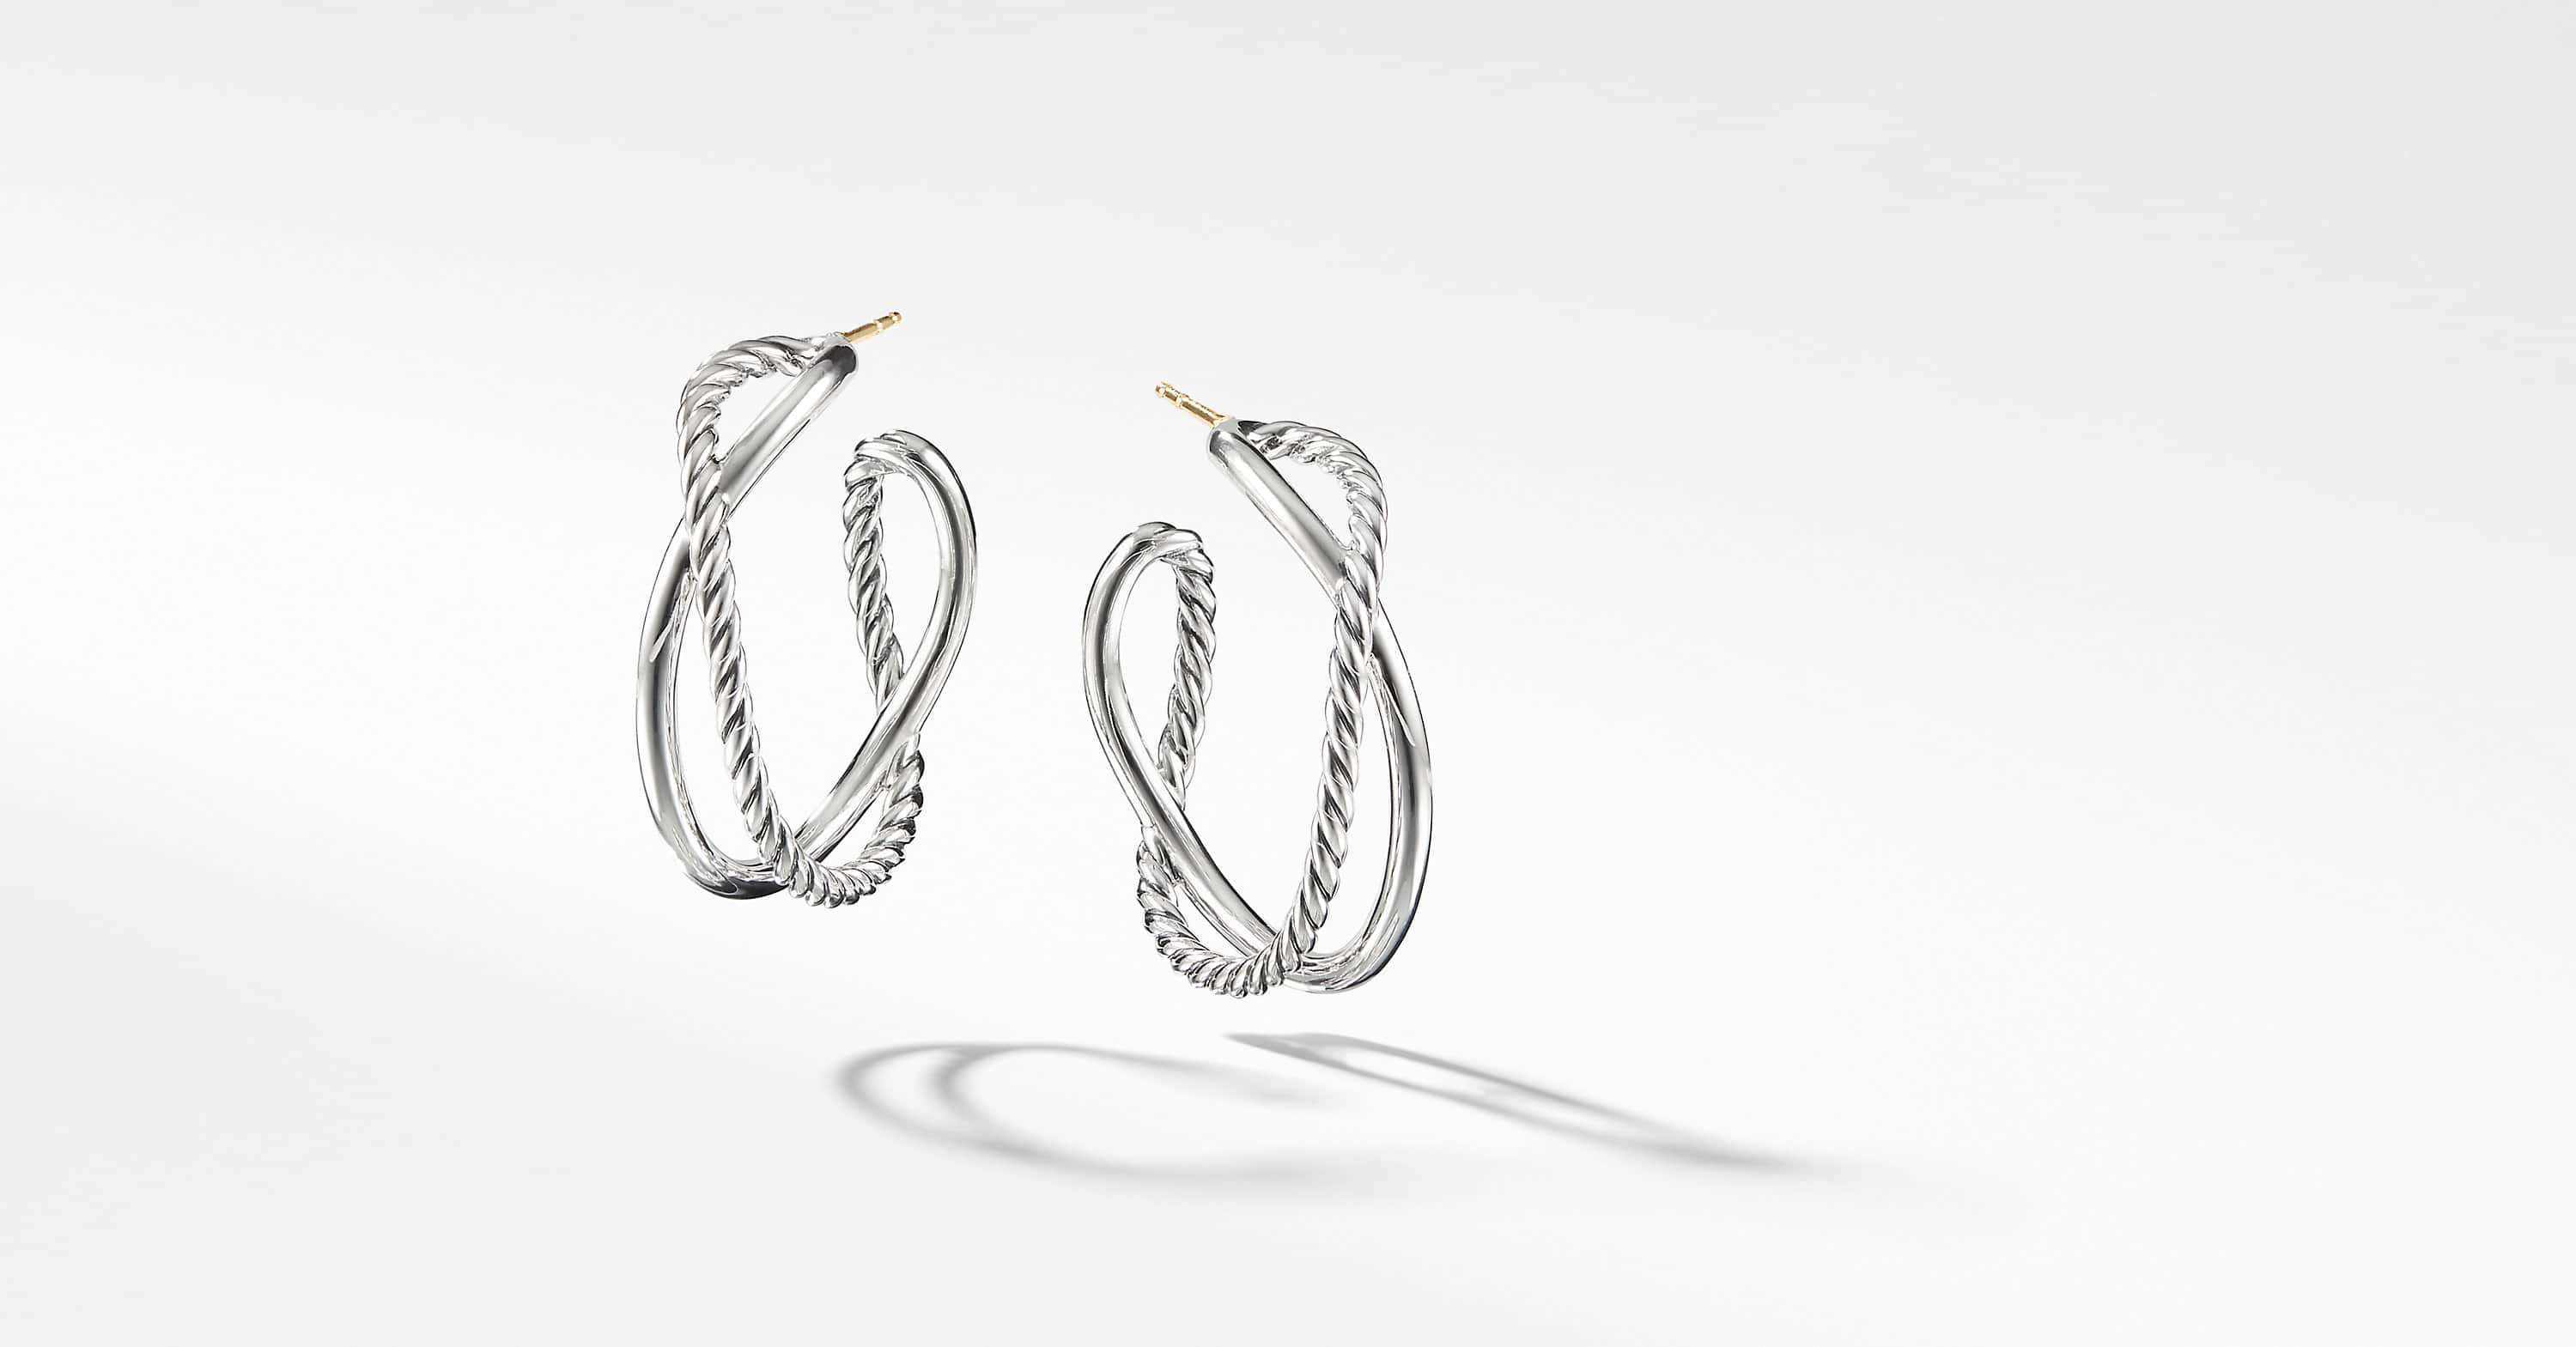 The Crossover Collection Hoop Earrings